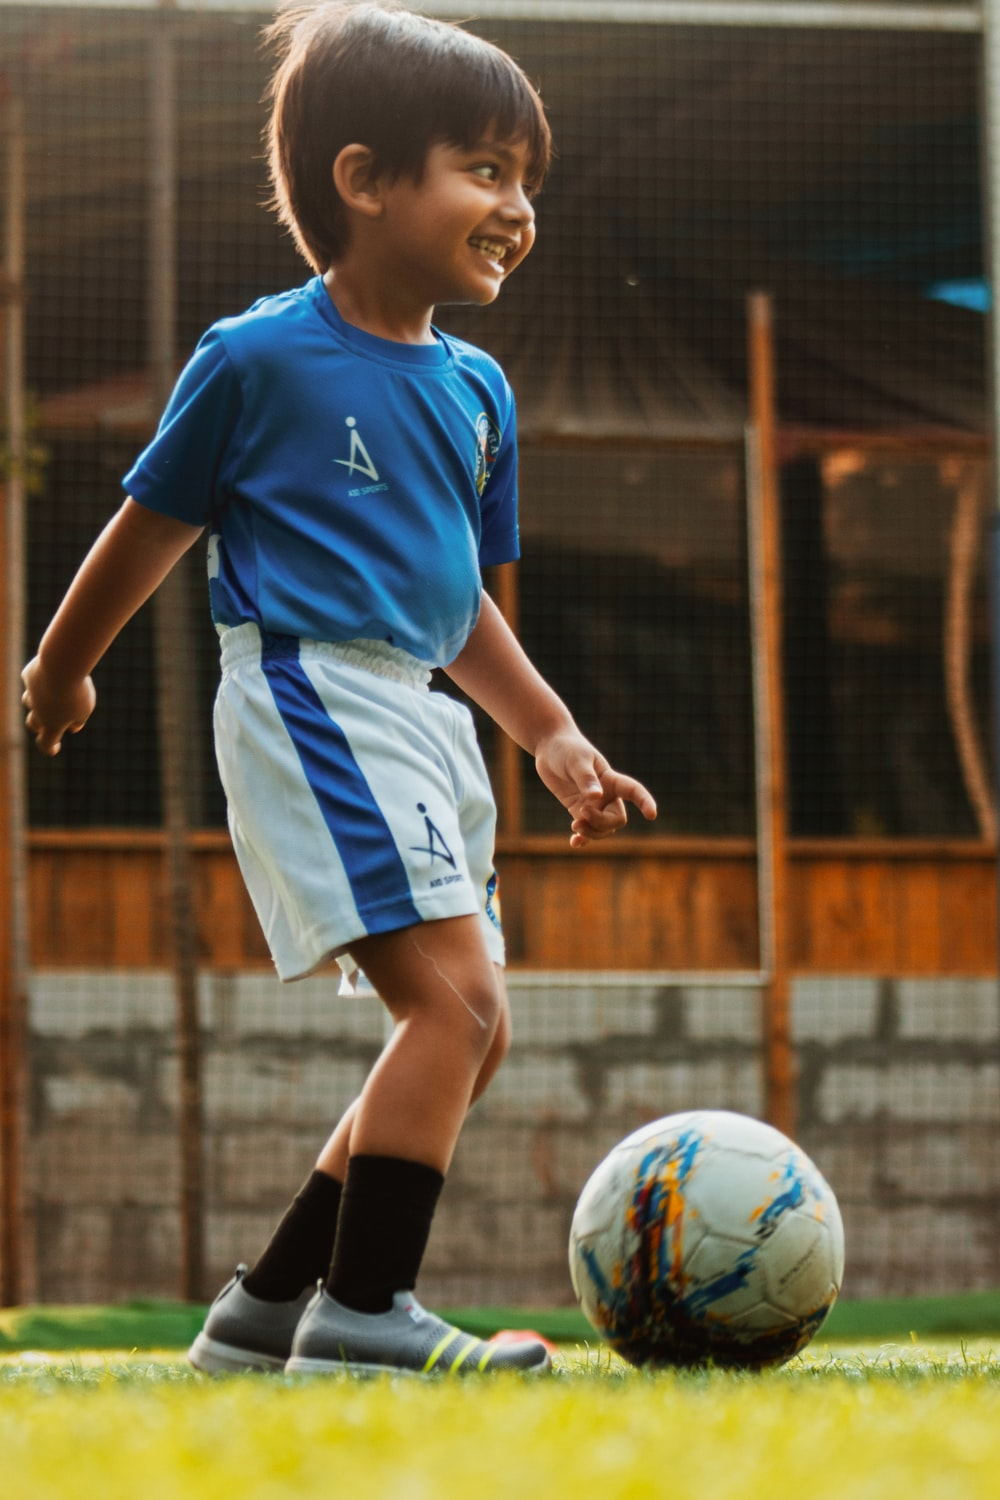 boy in blue and white soccer jersey kicking soccer ball